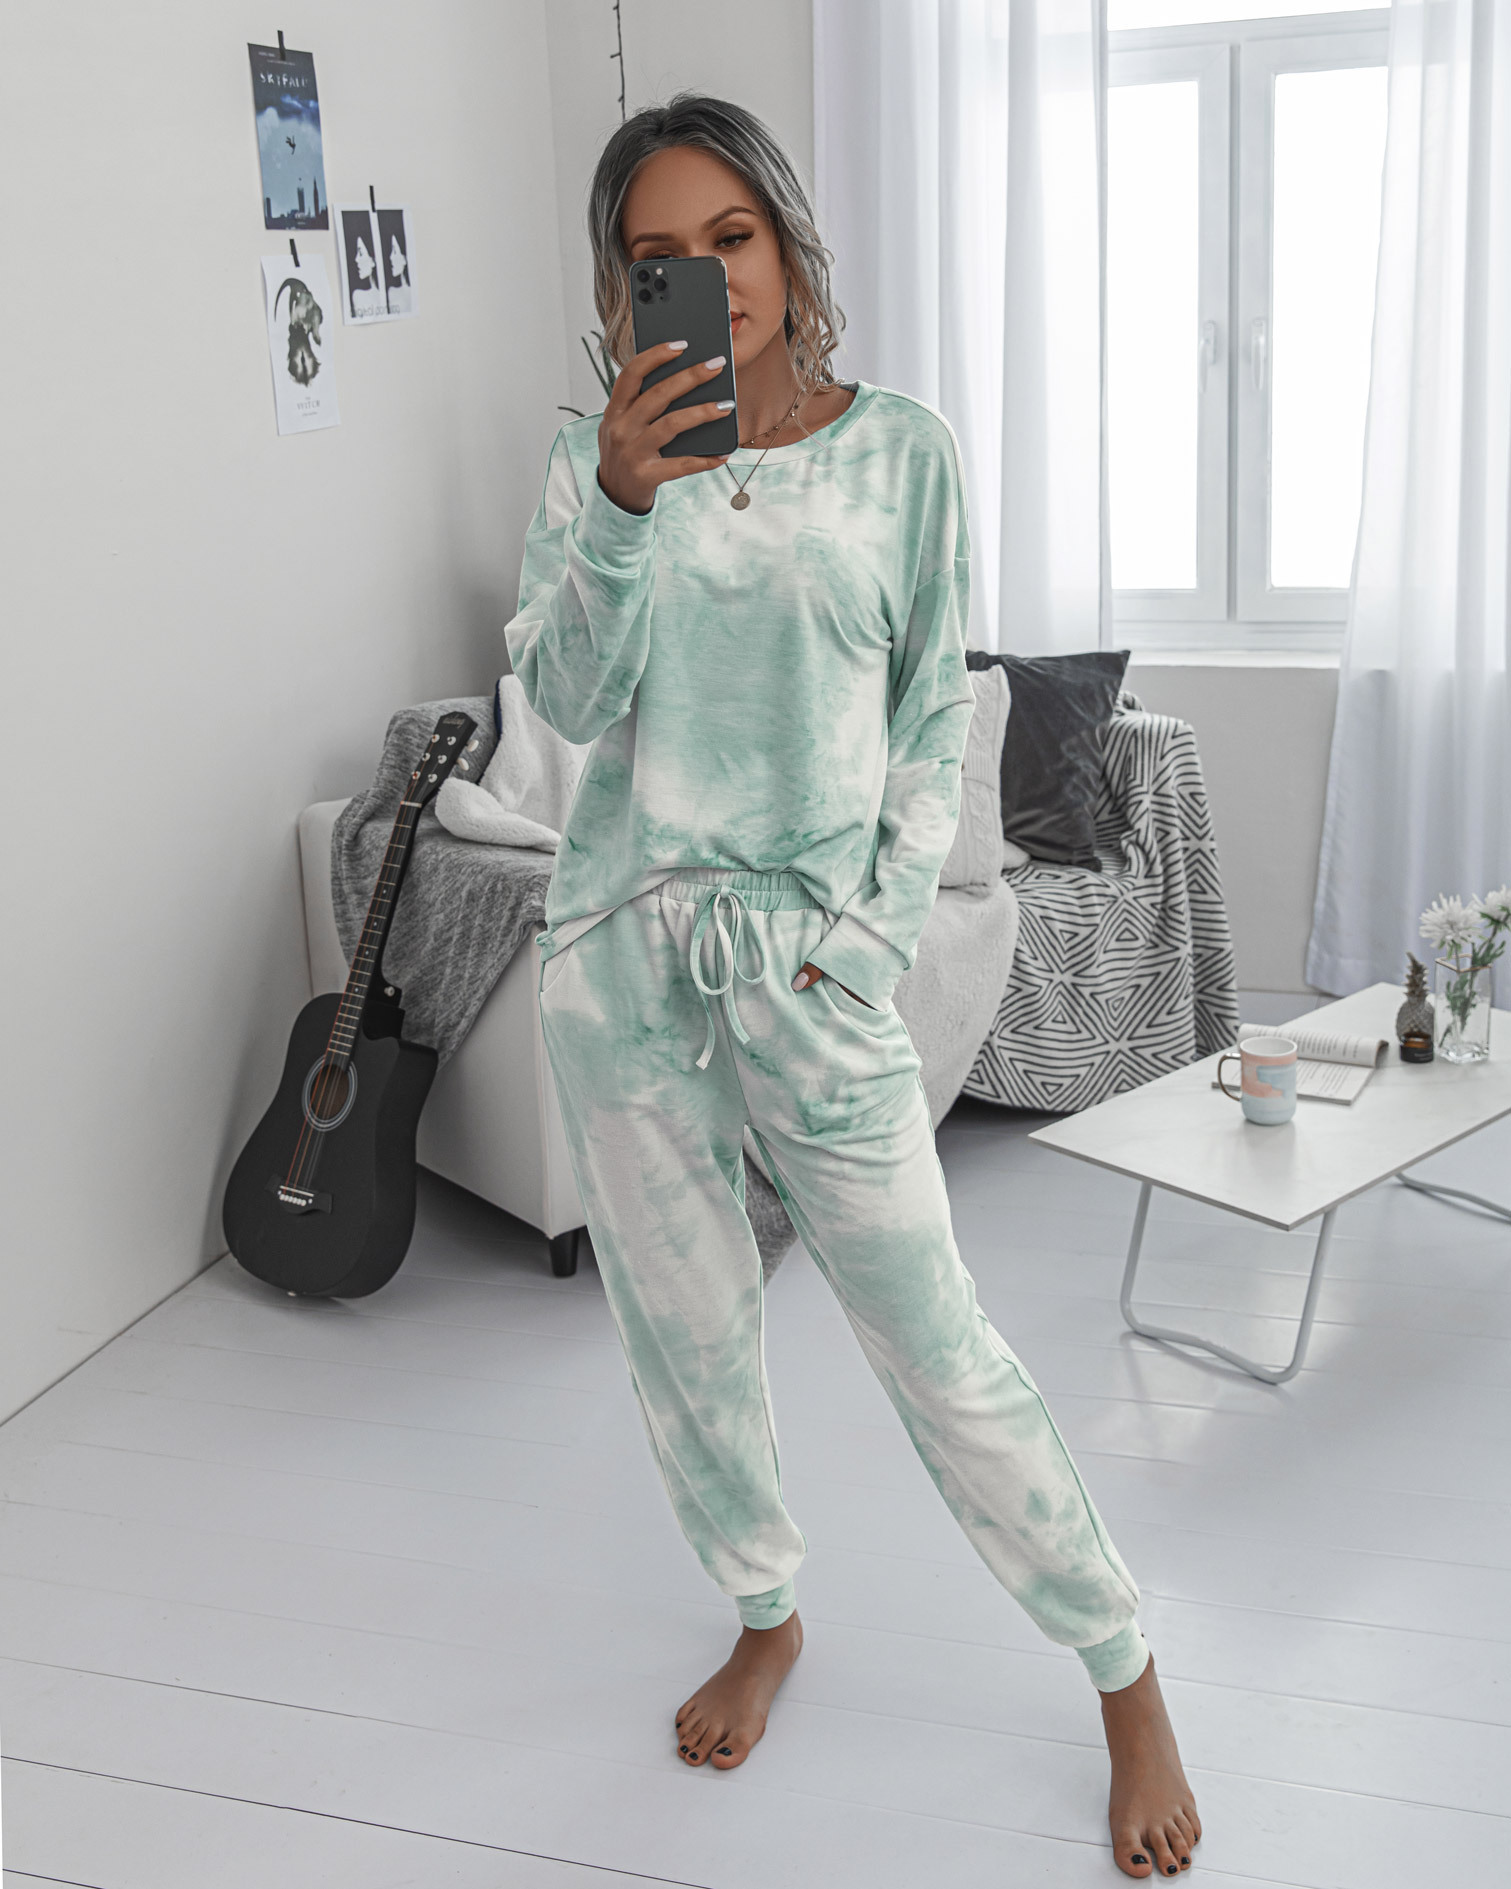 new printing autumn and winter ladies round neck casual long sleeve women s sports suit NSYF863